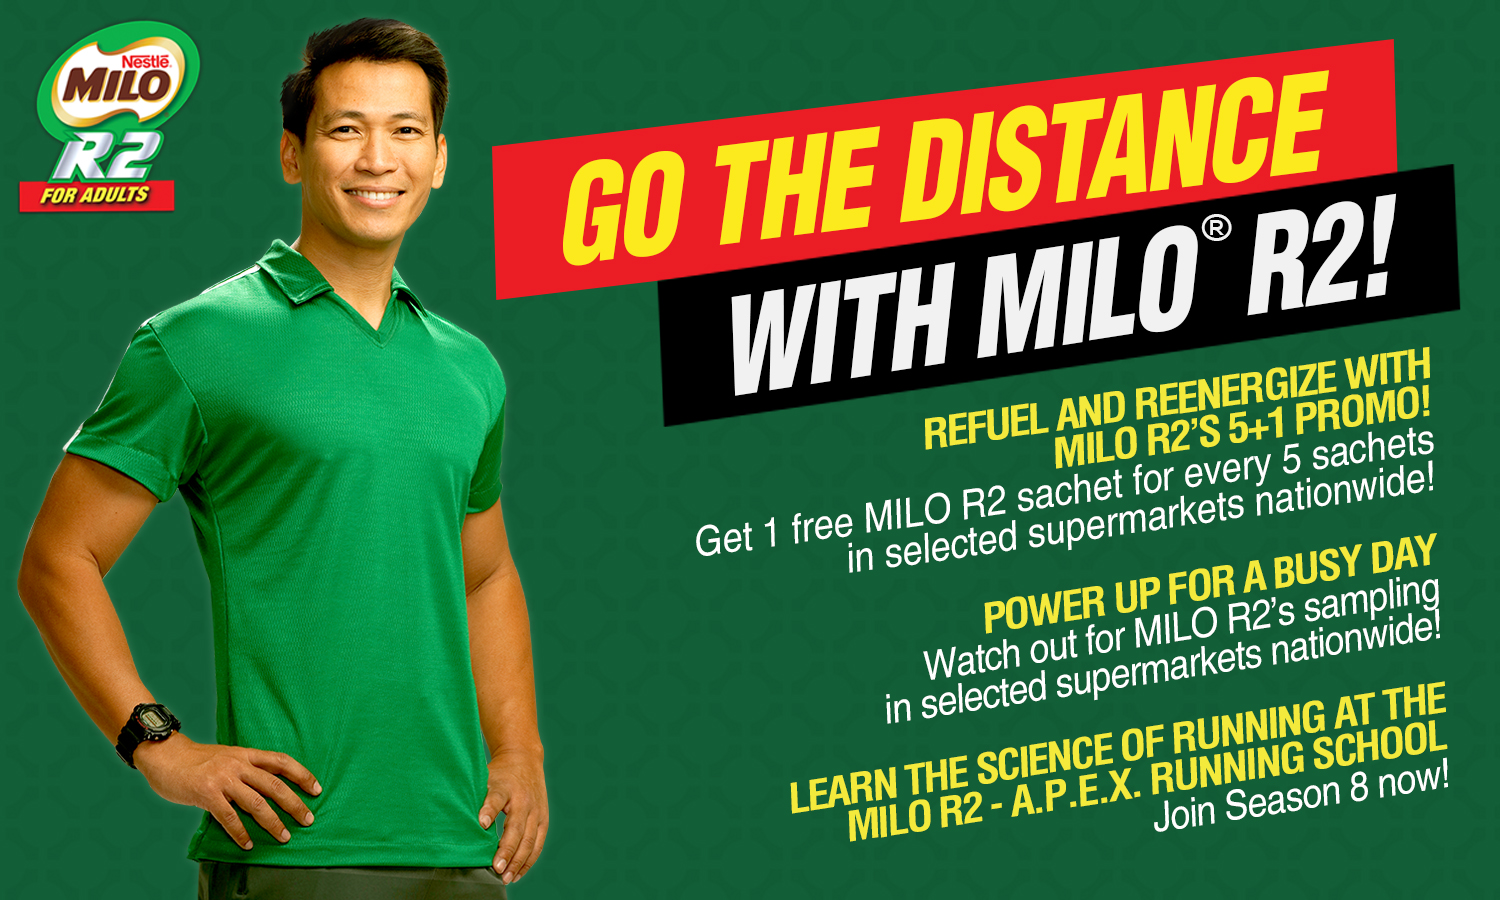 Milo Press Release Going The Distance Kulit On Run Sachet Manila Philippines 14 February 2014 In Celebration Of Its 50th Year Has Renewed Commitment To Building A Strong Nation